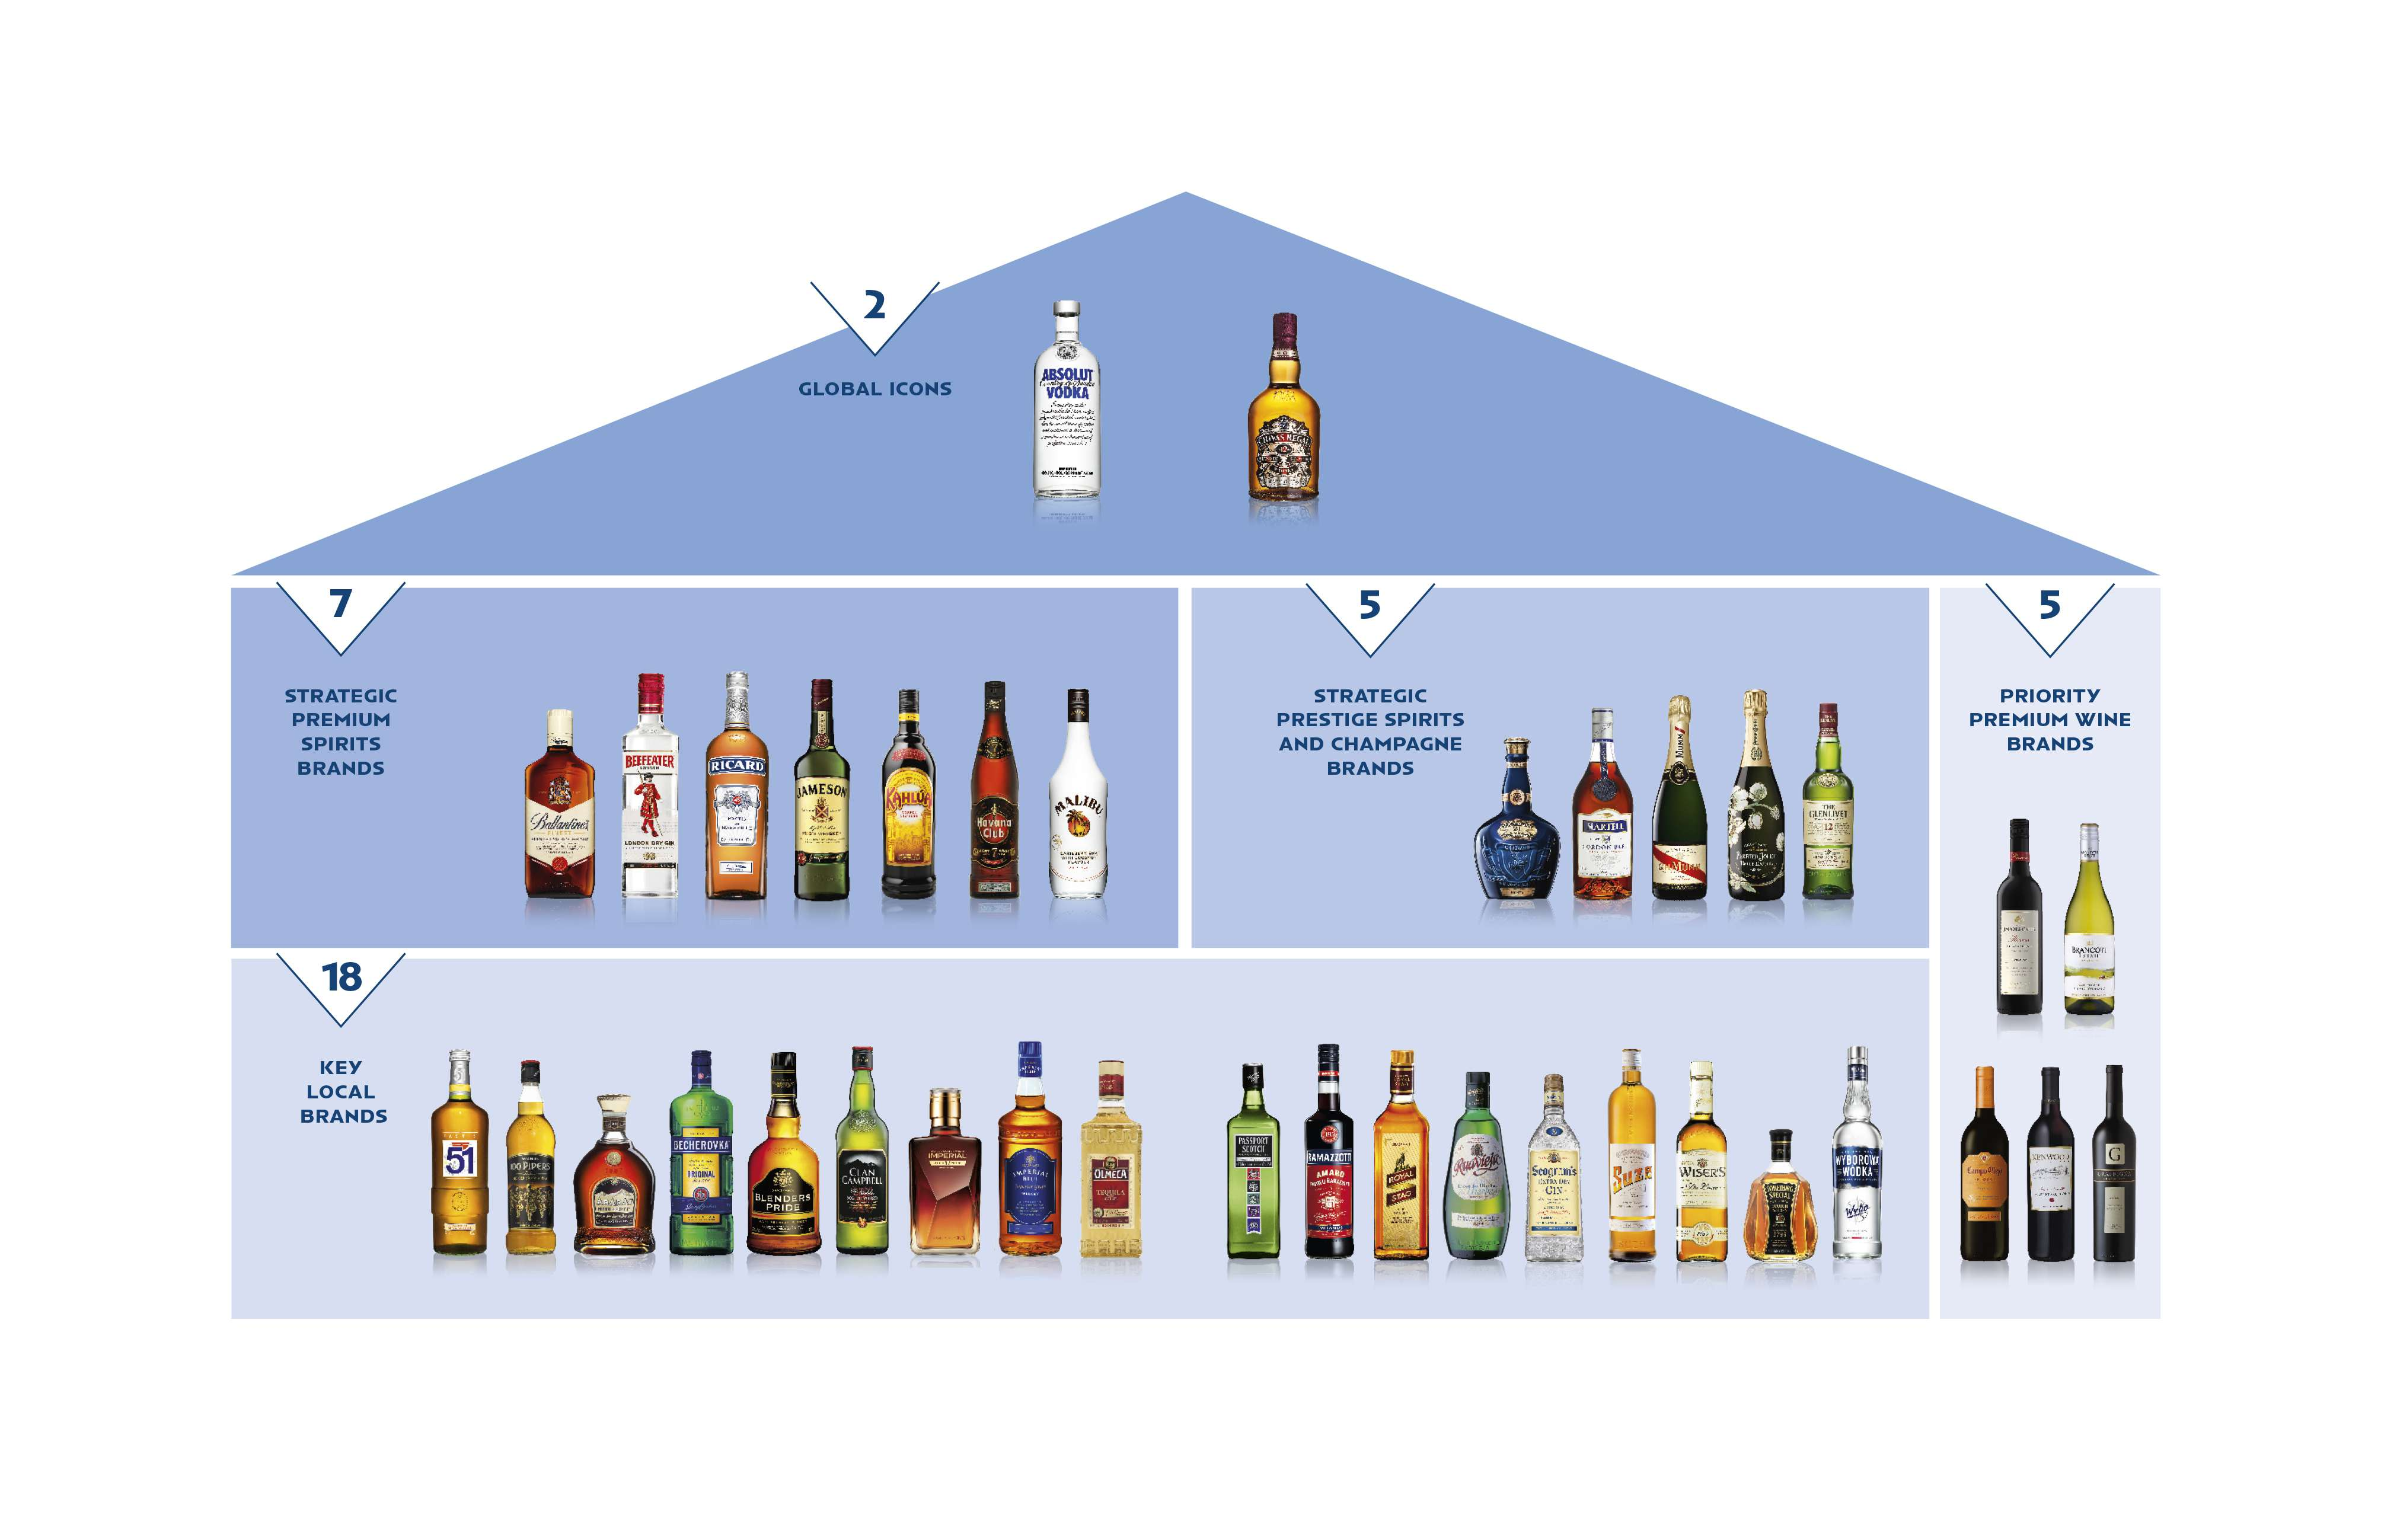 Pernod Ricard Group Pernod Ricard Czech Republic